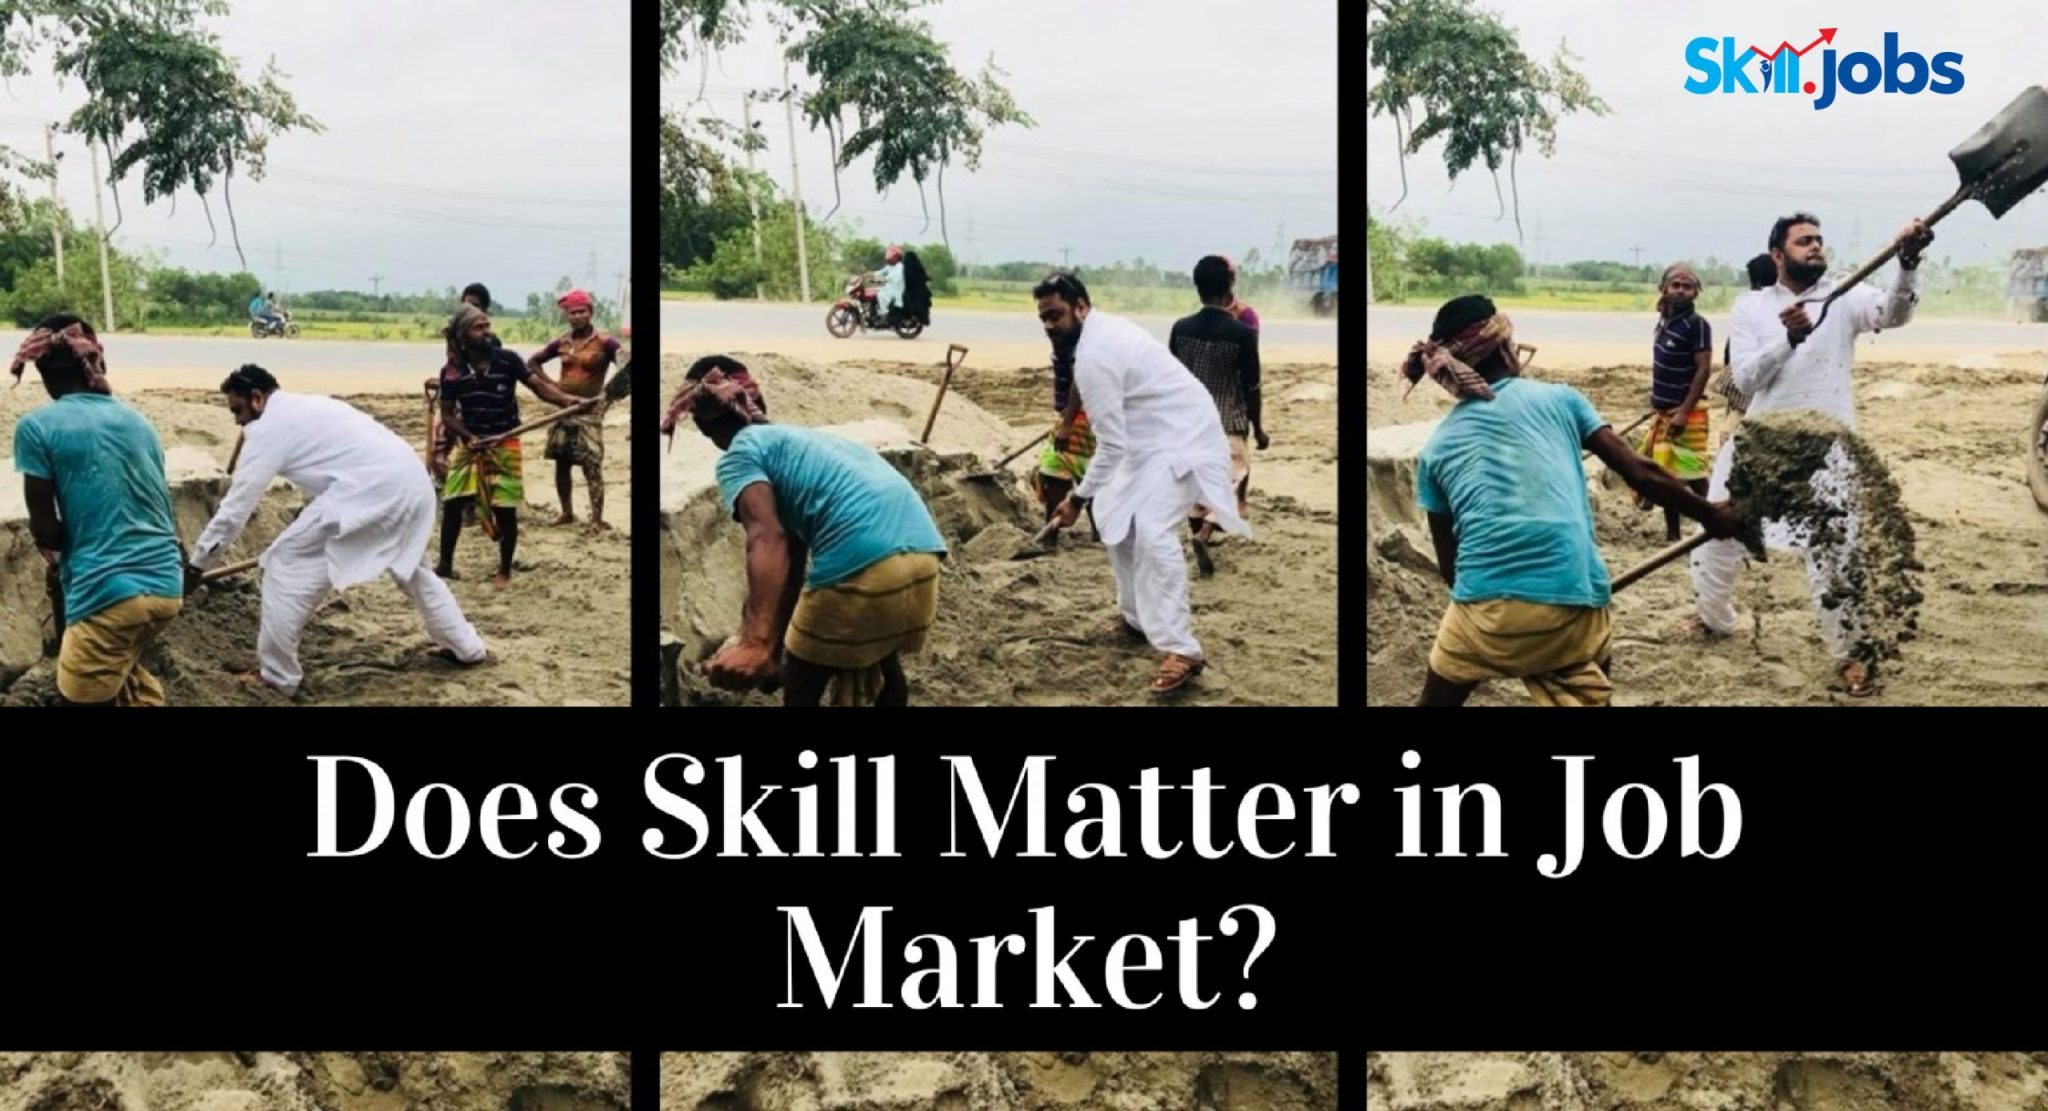 Does Skill Matter in Job Market?